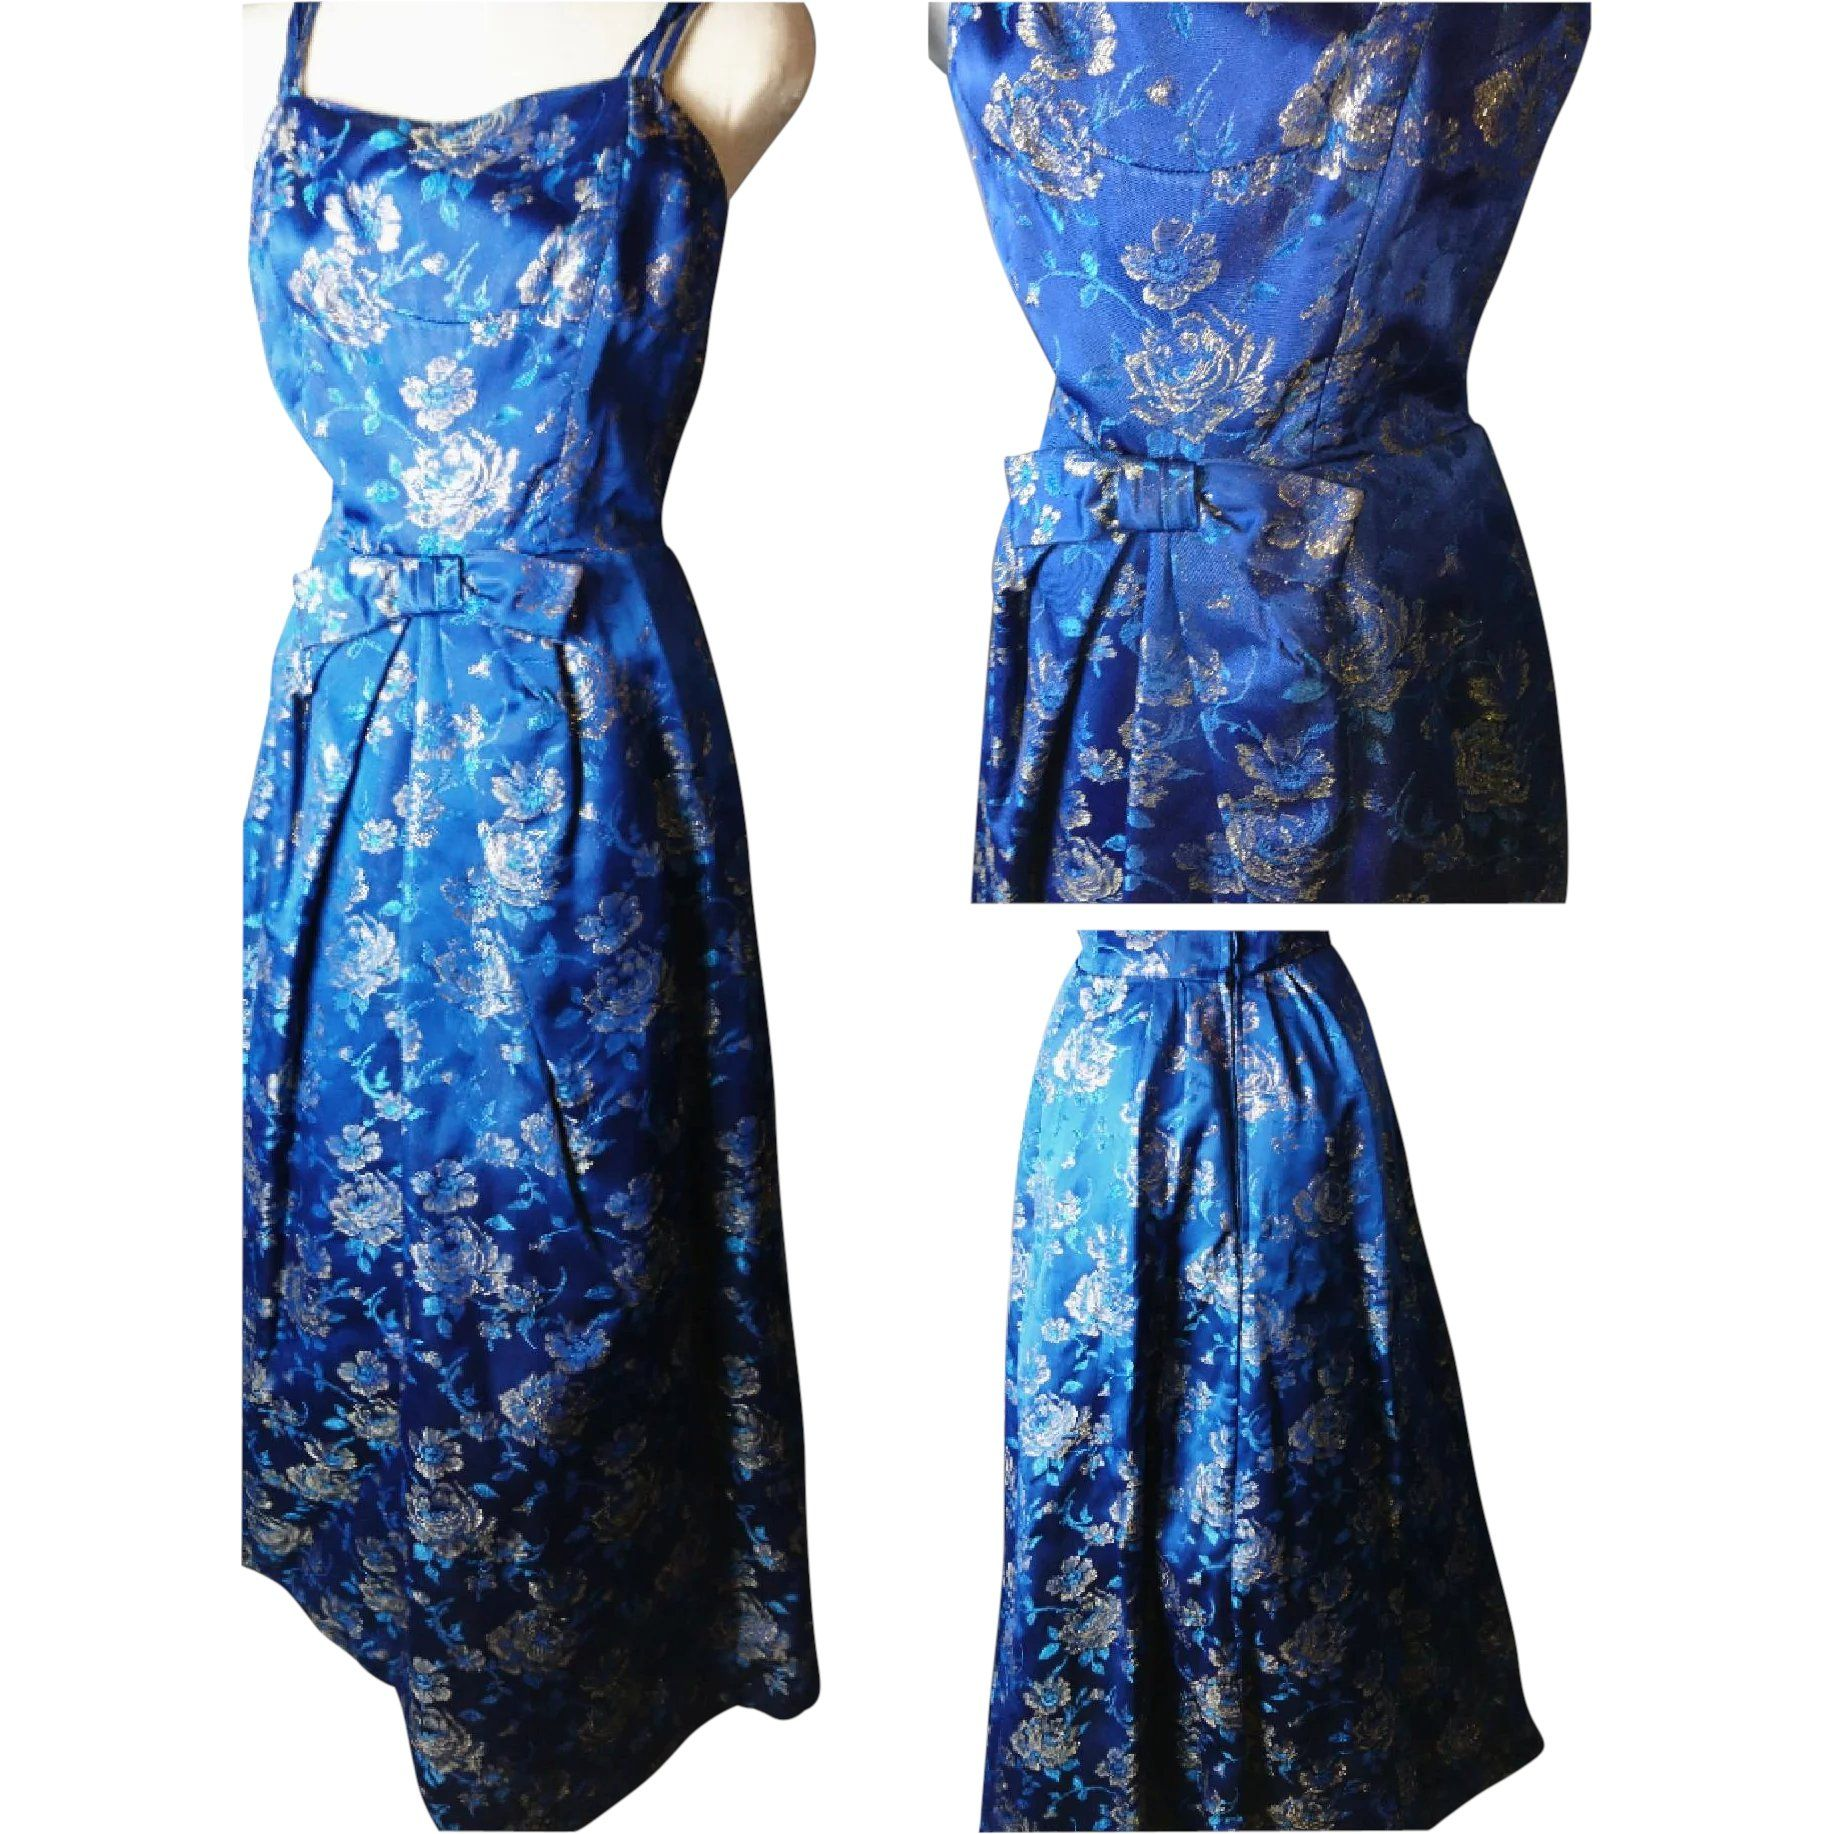 Vintage us brocade dress evening gown vintage clothing and